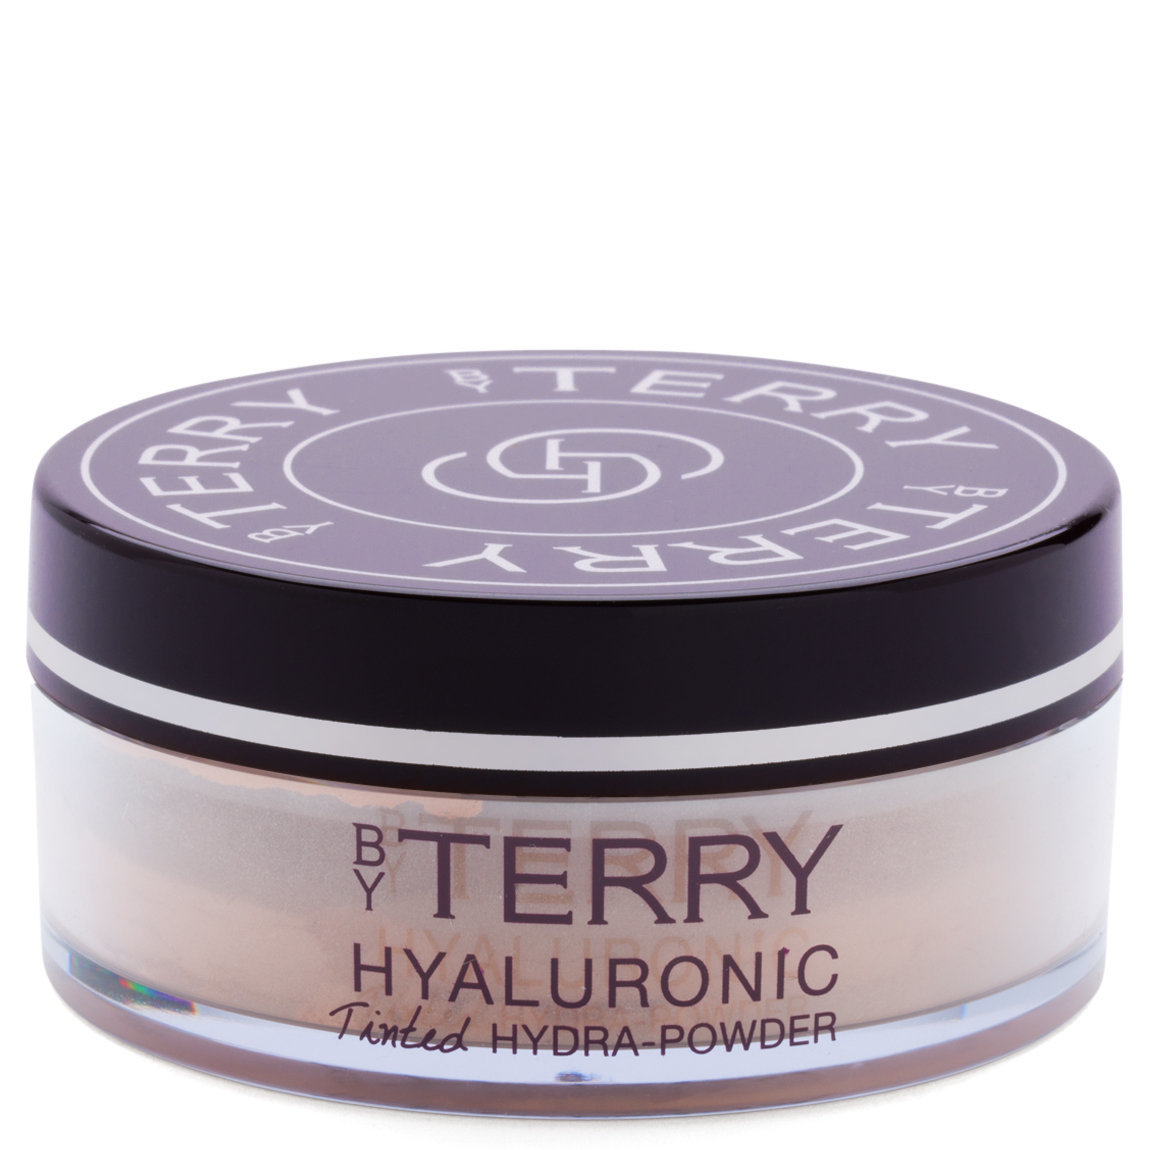 BY TERRY Hyaluronic Tinted Hydra-Powder N200 Natural alternative view 1.